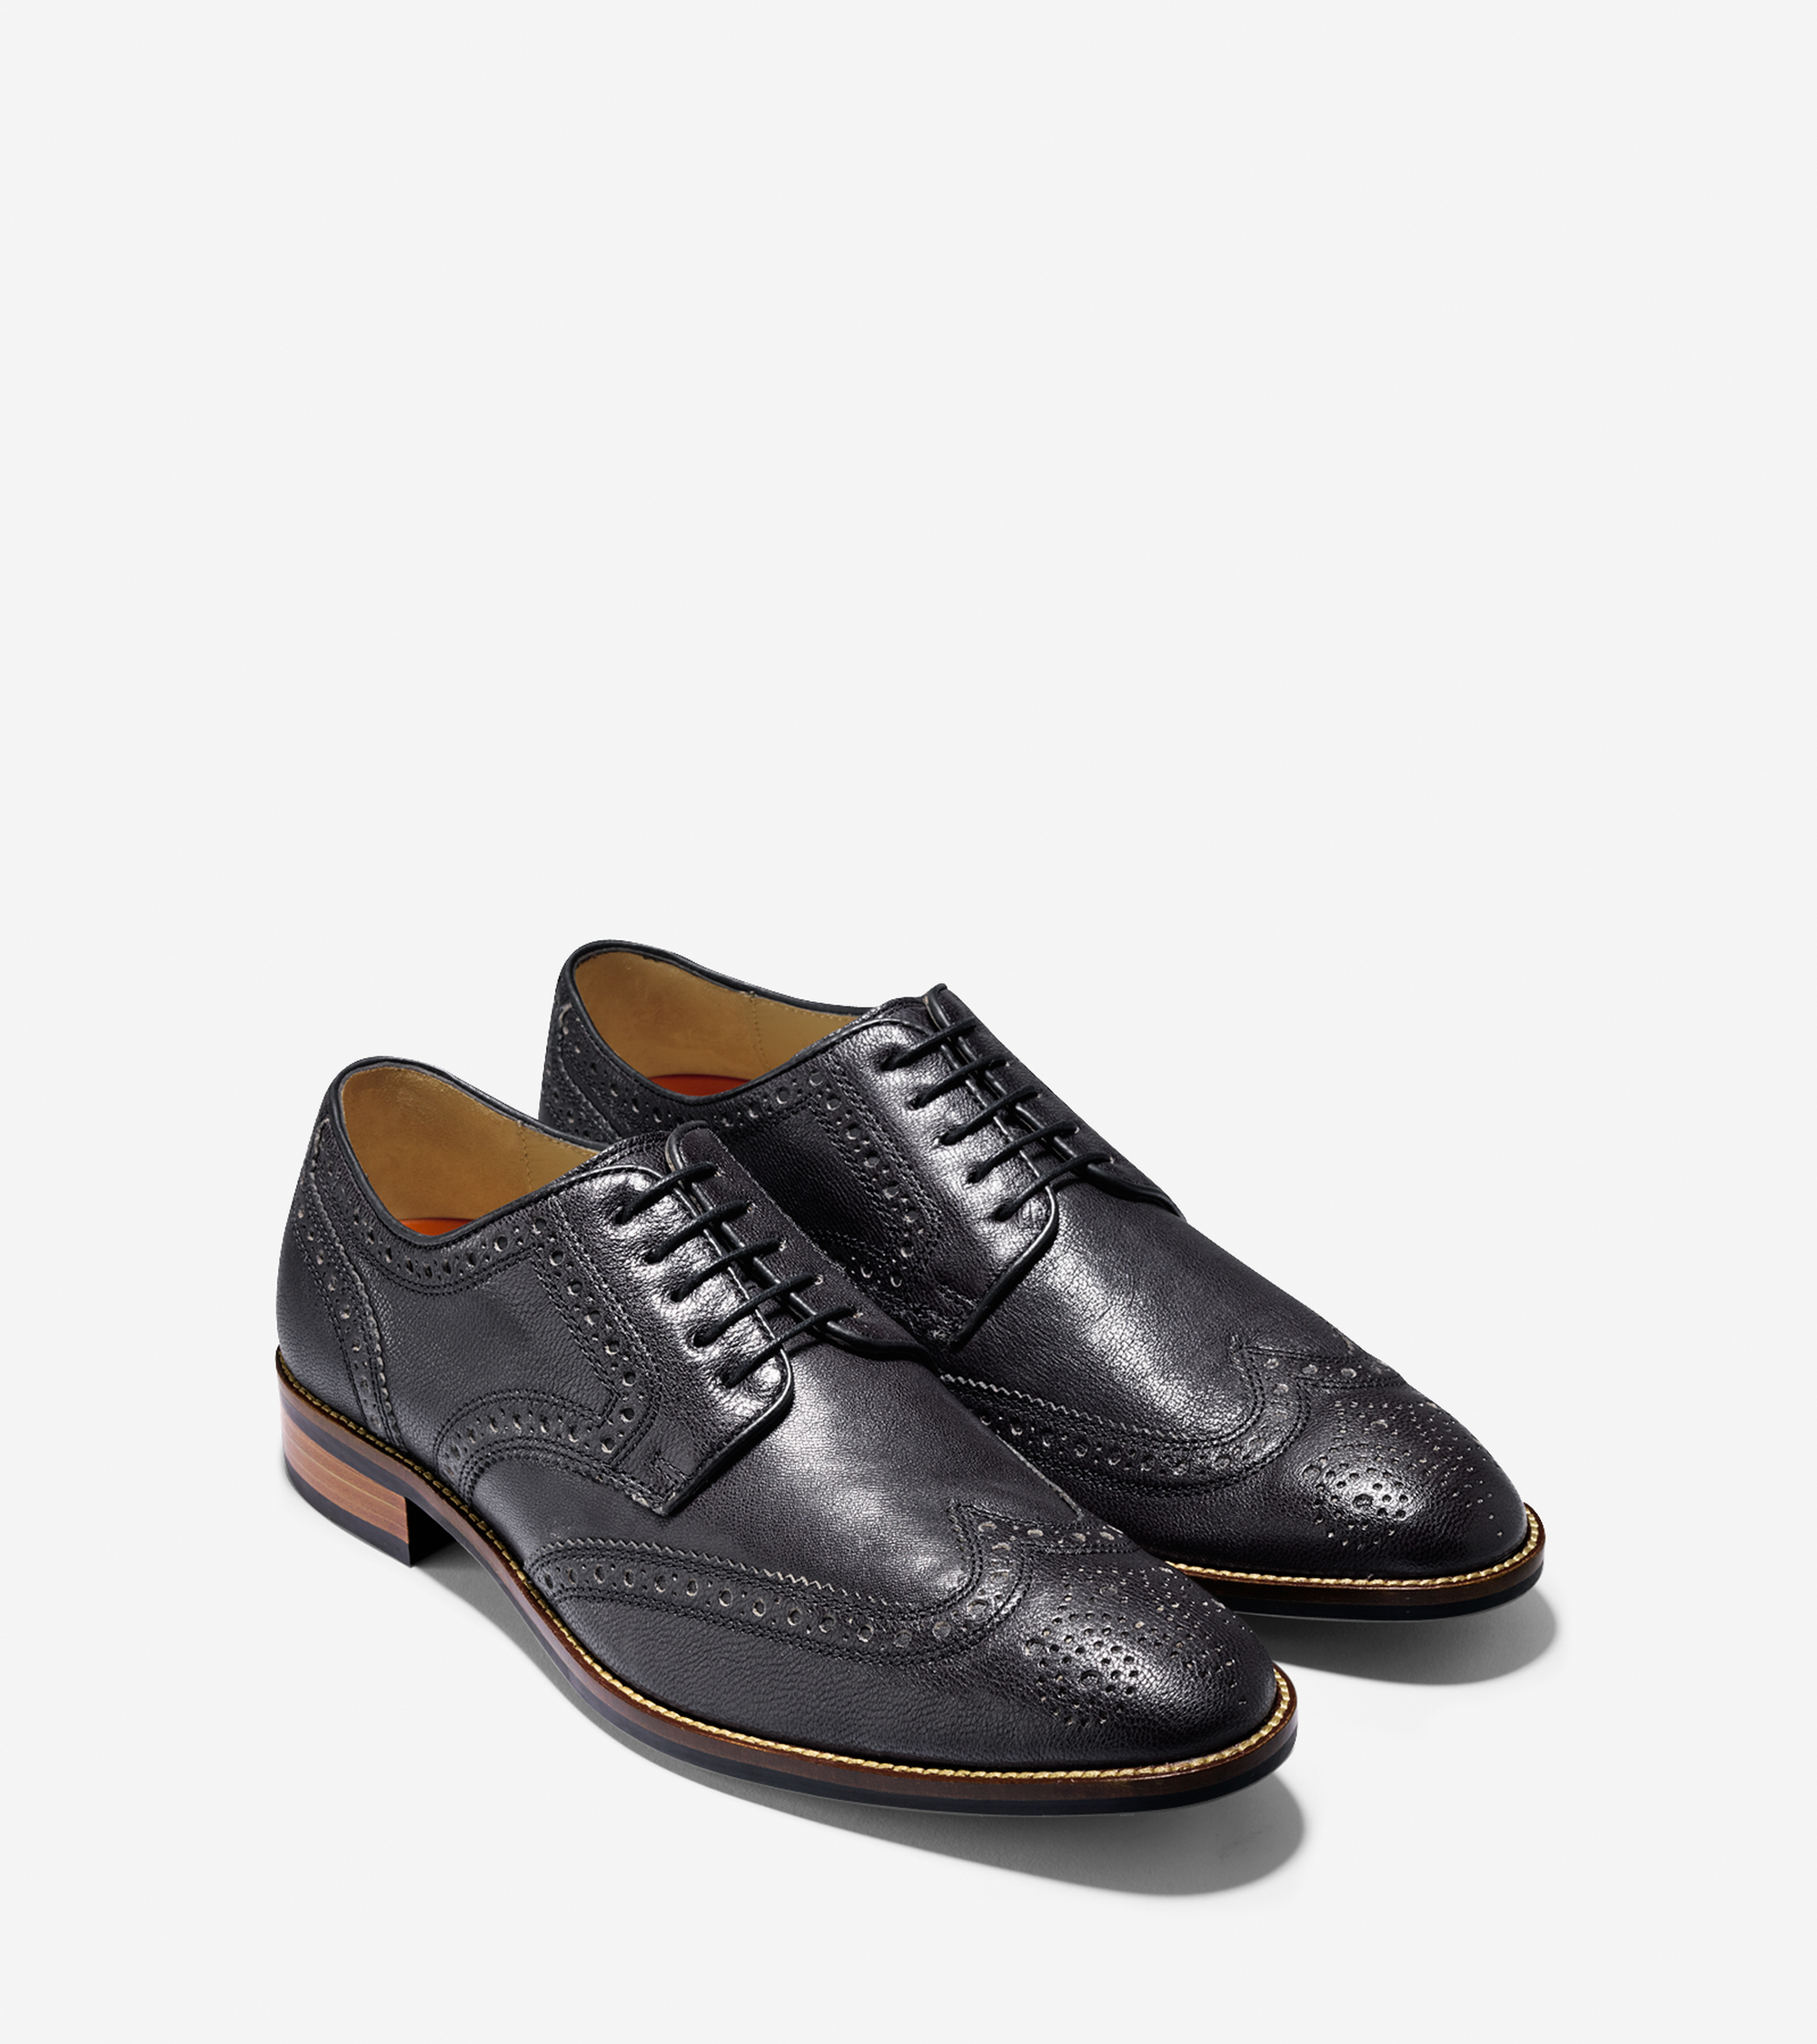 Cole ZERGRAND Mens Sneaker Haan Black Perforated Mens The responsibility of orienting new board members should be shared between the executive director, board chairperson and a few other board members. It should not be the sole responsibility of the executive director or of any one person.